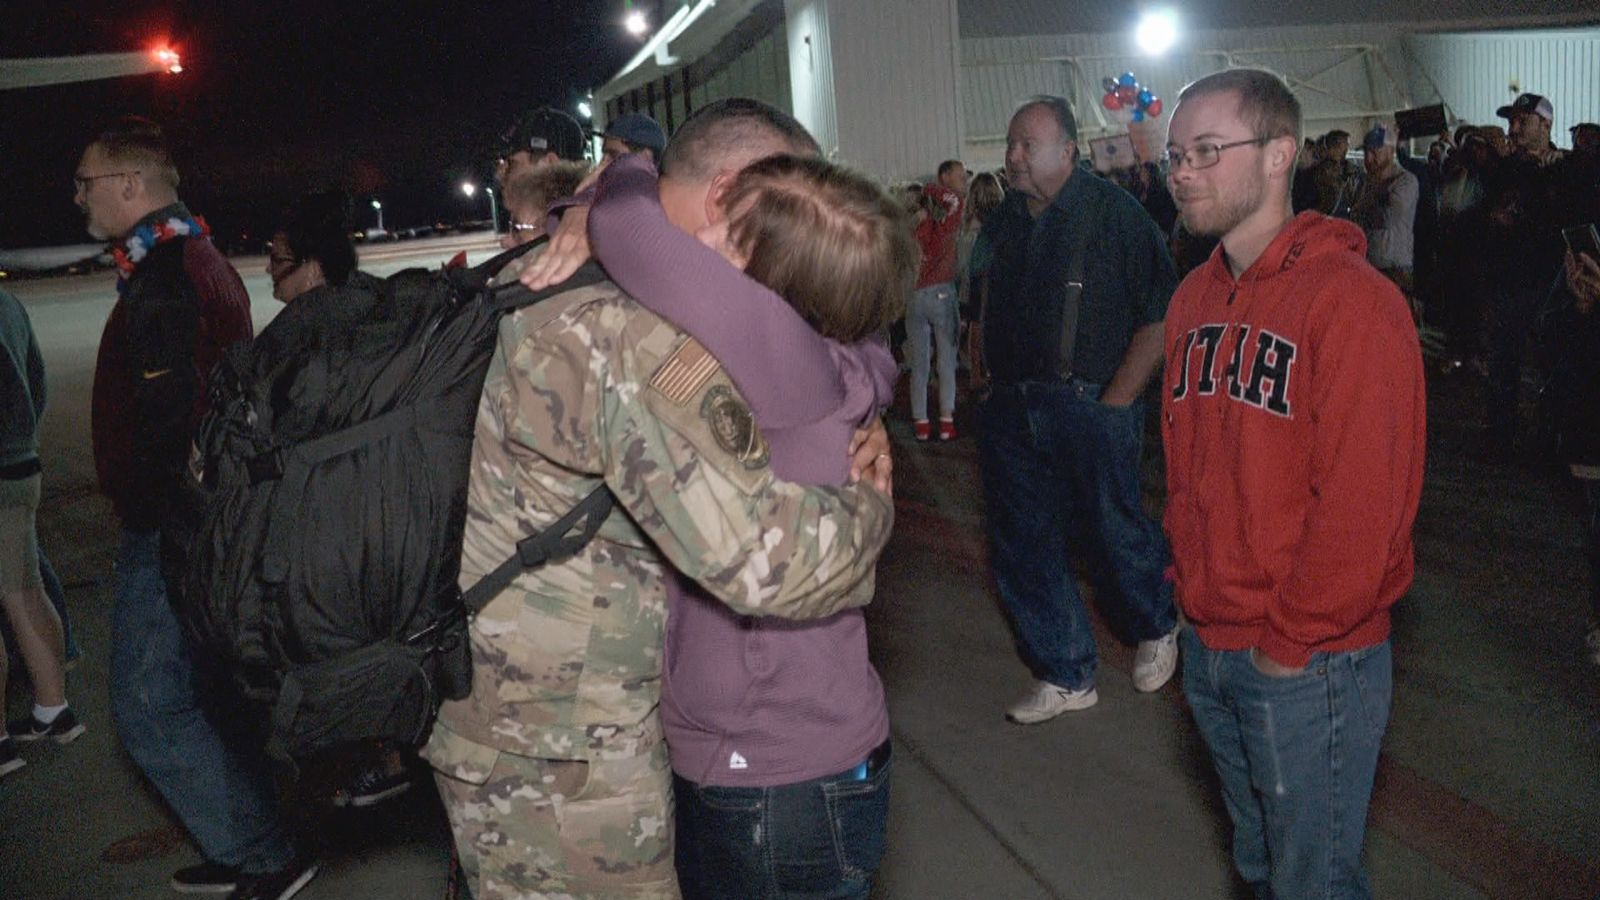 Just after midnight on Monday, more than 100 members of the Utah Air National Guard returned home. (Photo: KUTV)